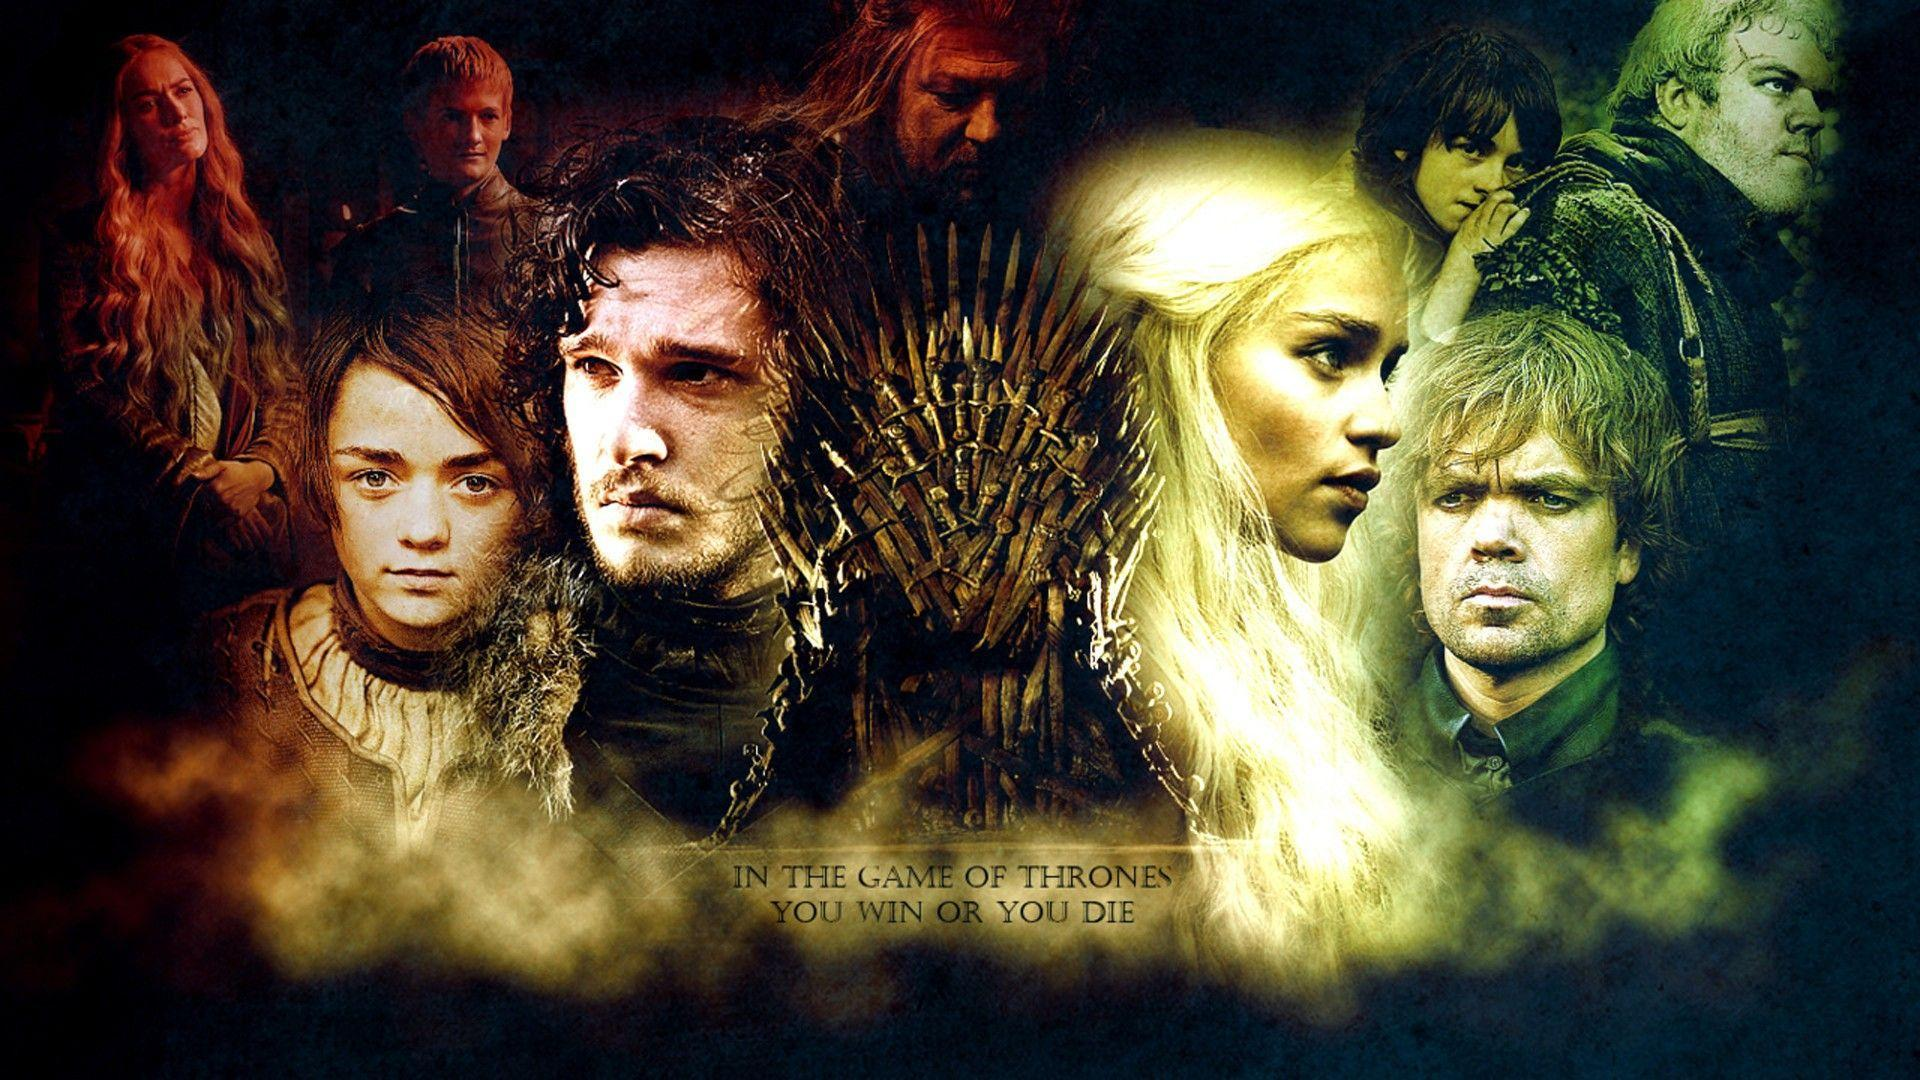 Jon Snow And Daenerys Wallpapers Wallpaper Cave